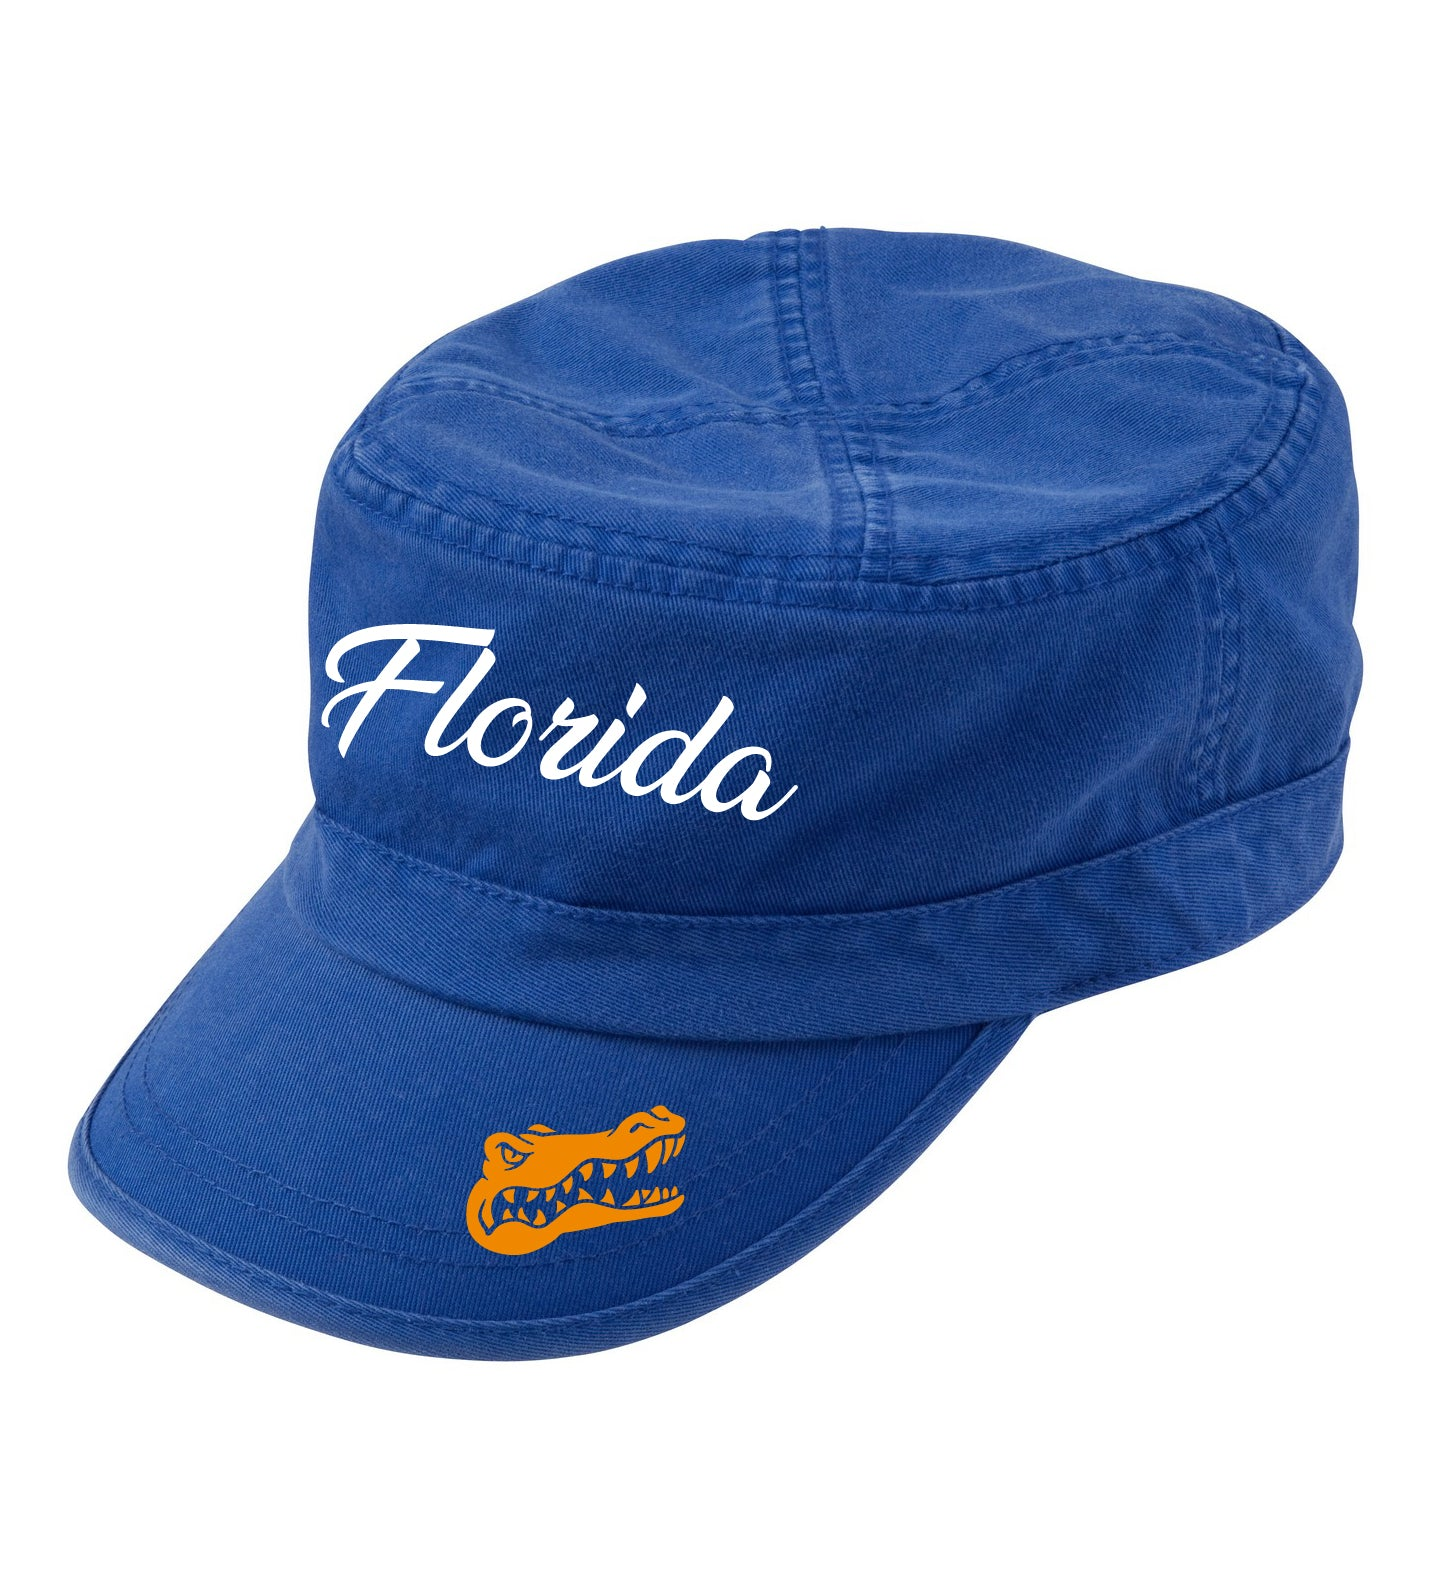 Florida Gator Royal Fidel Cap